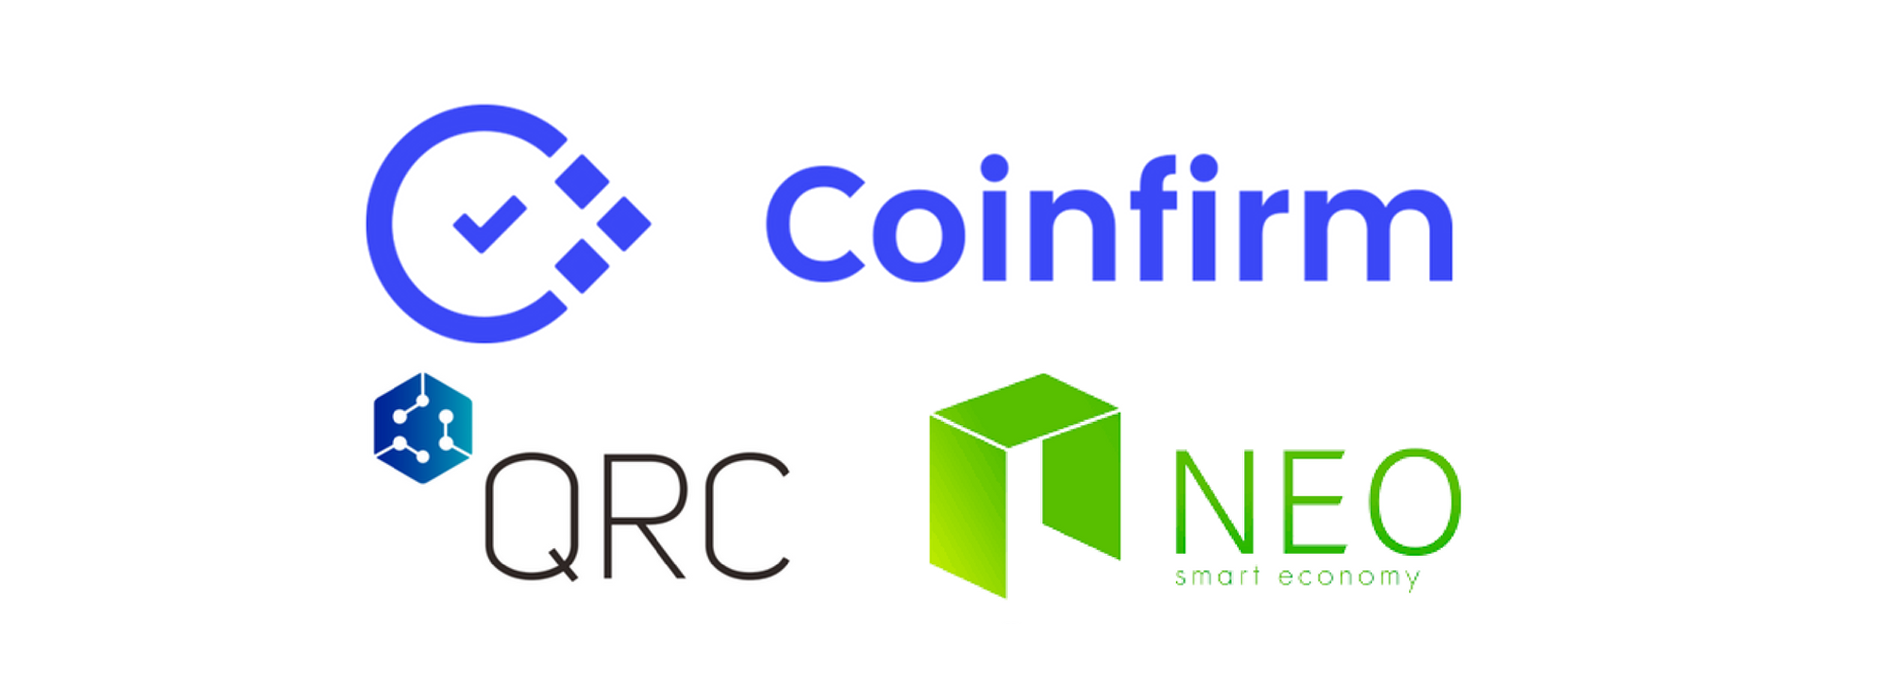 Blockchain Leaders Coinfirm, NEO and QRC Partner to Build Smart Economy Ecosystem